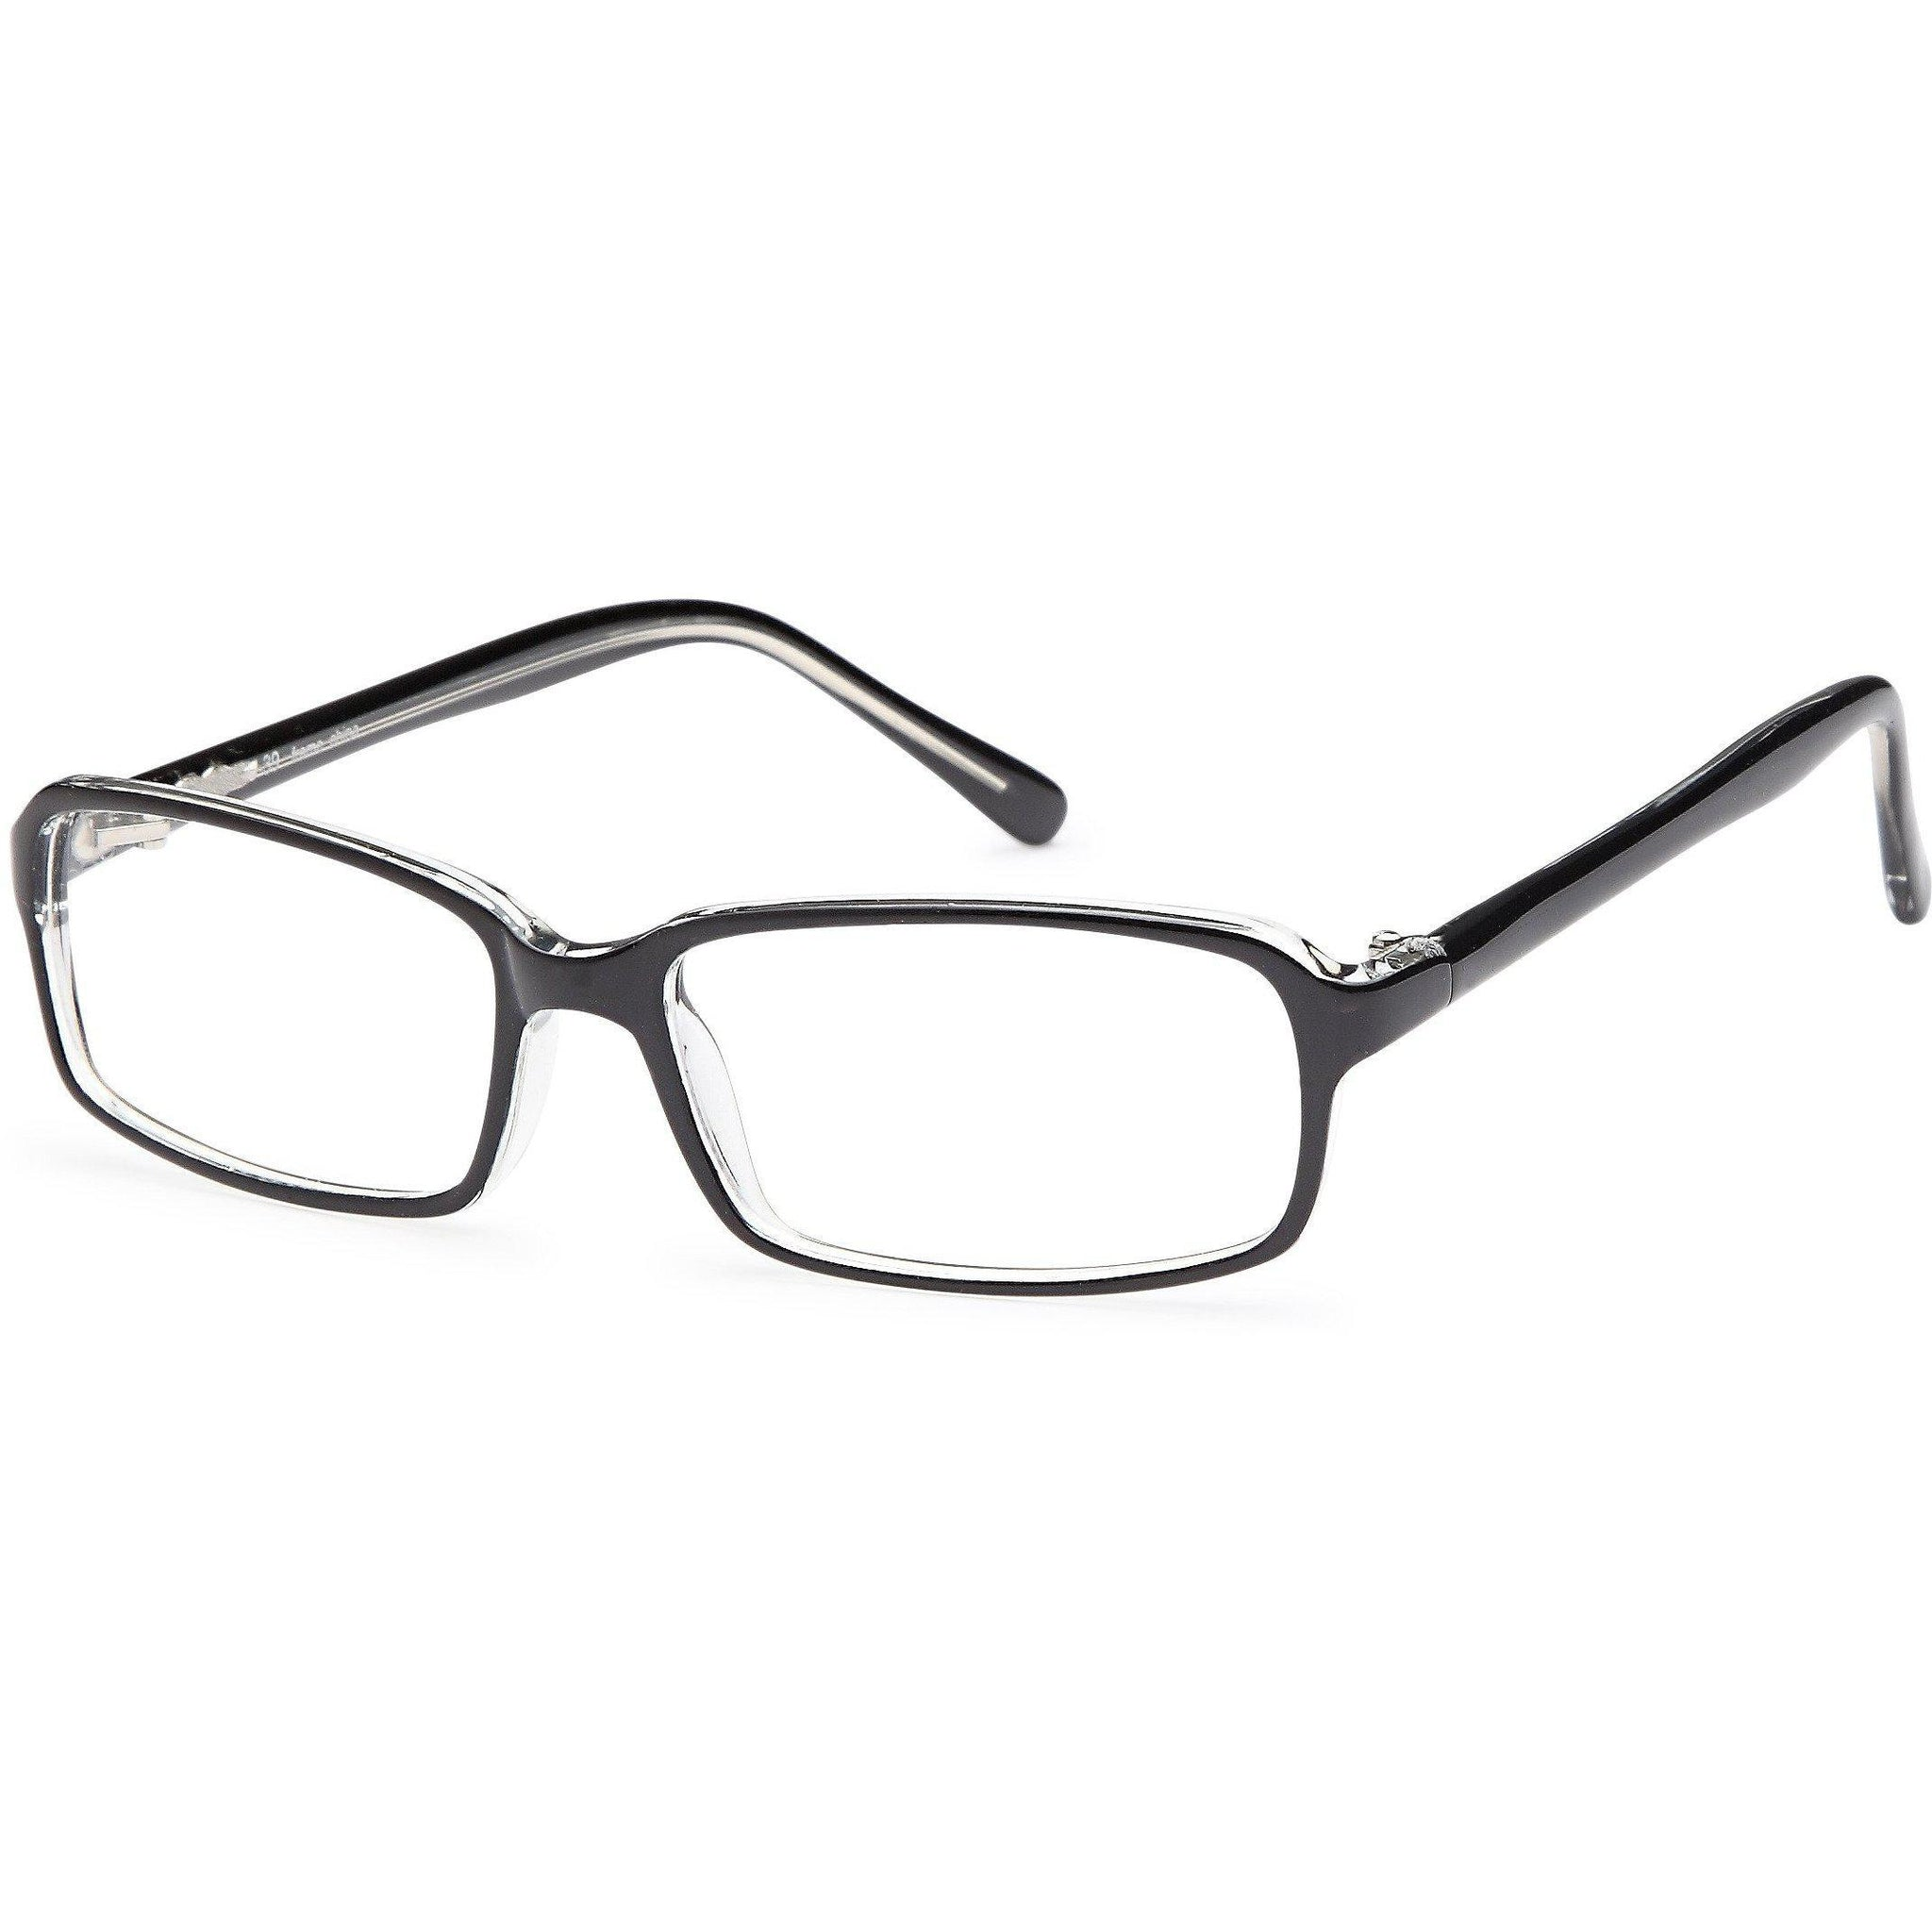 4U Prescription Glasses U 39 Optical Eyeglasses Frame - timetoshade